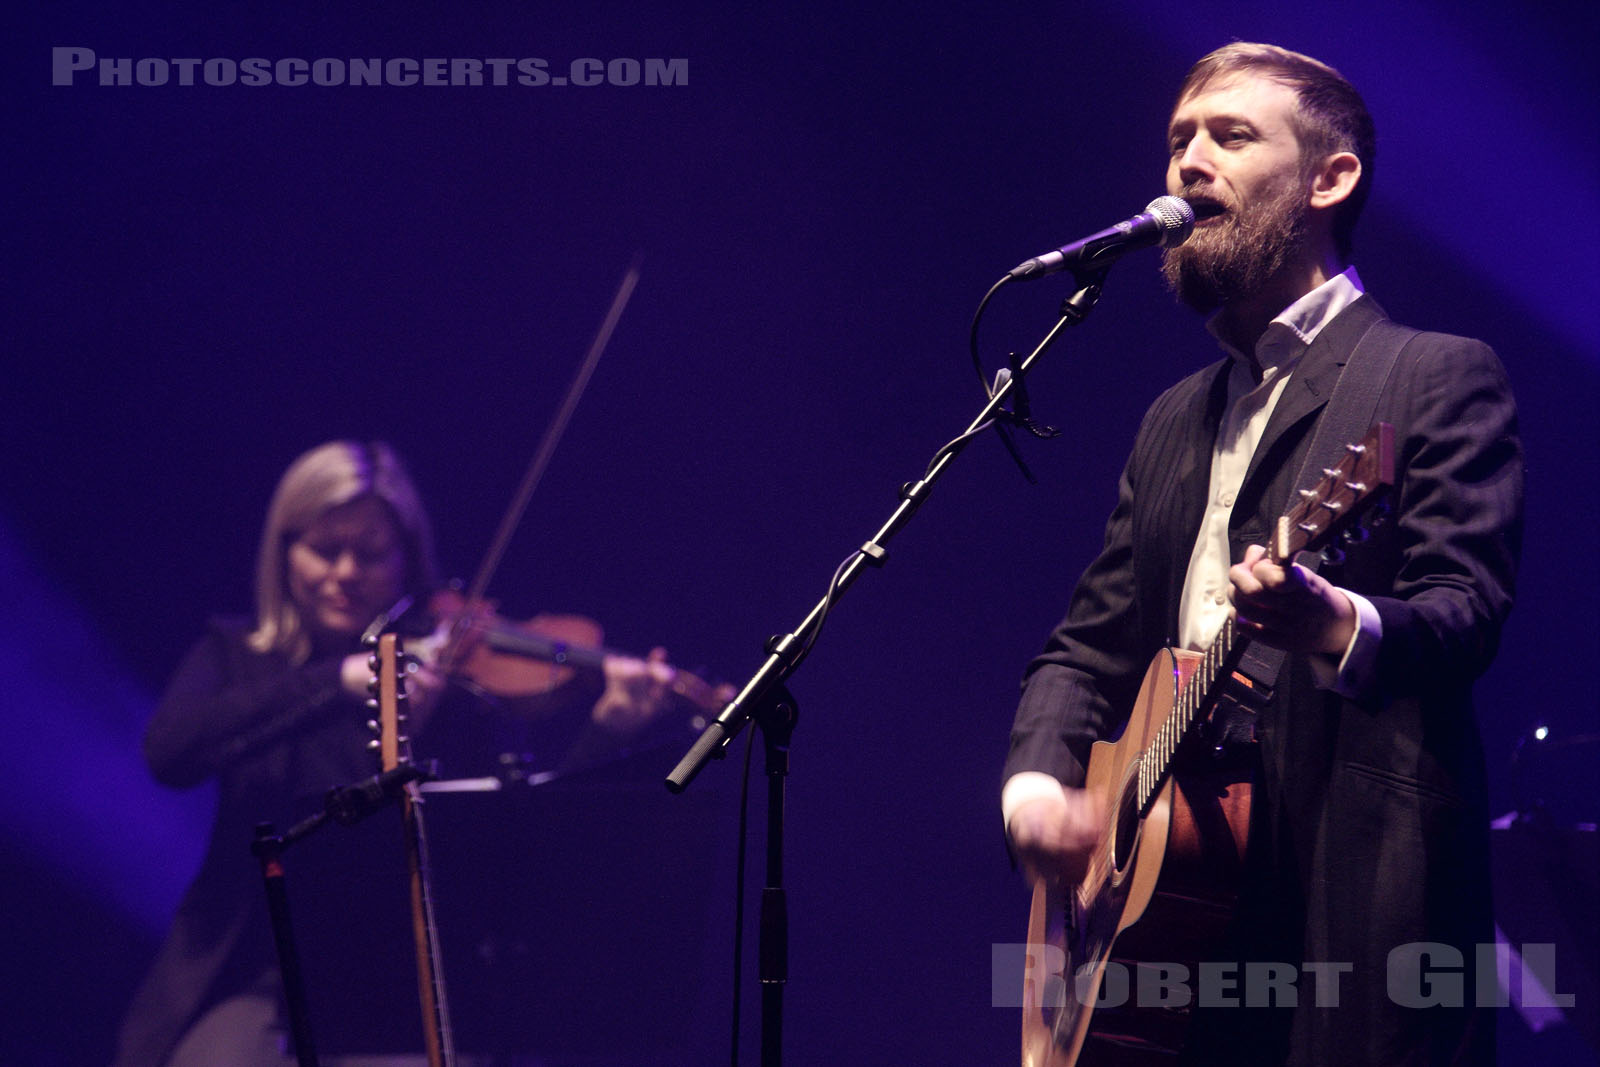 THE DIVINE COMEDY - 2015-02-11 - PARIS - Philharmonie de Paris 1